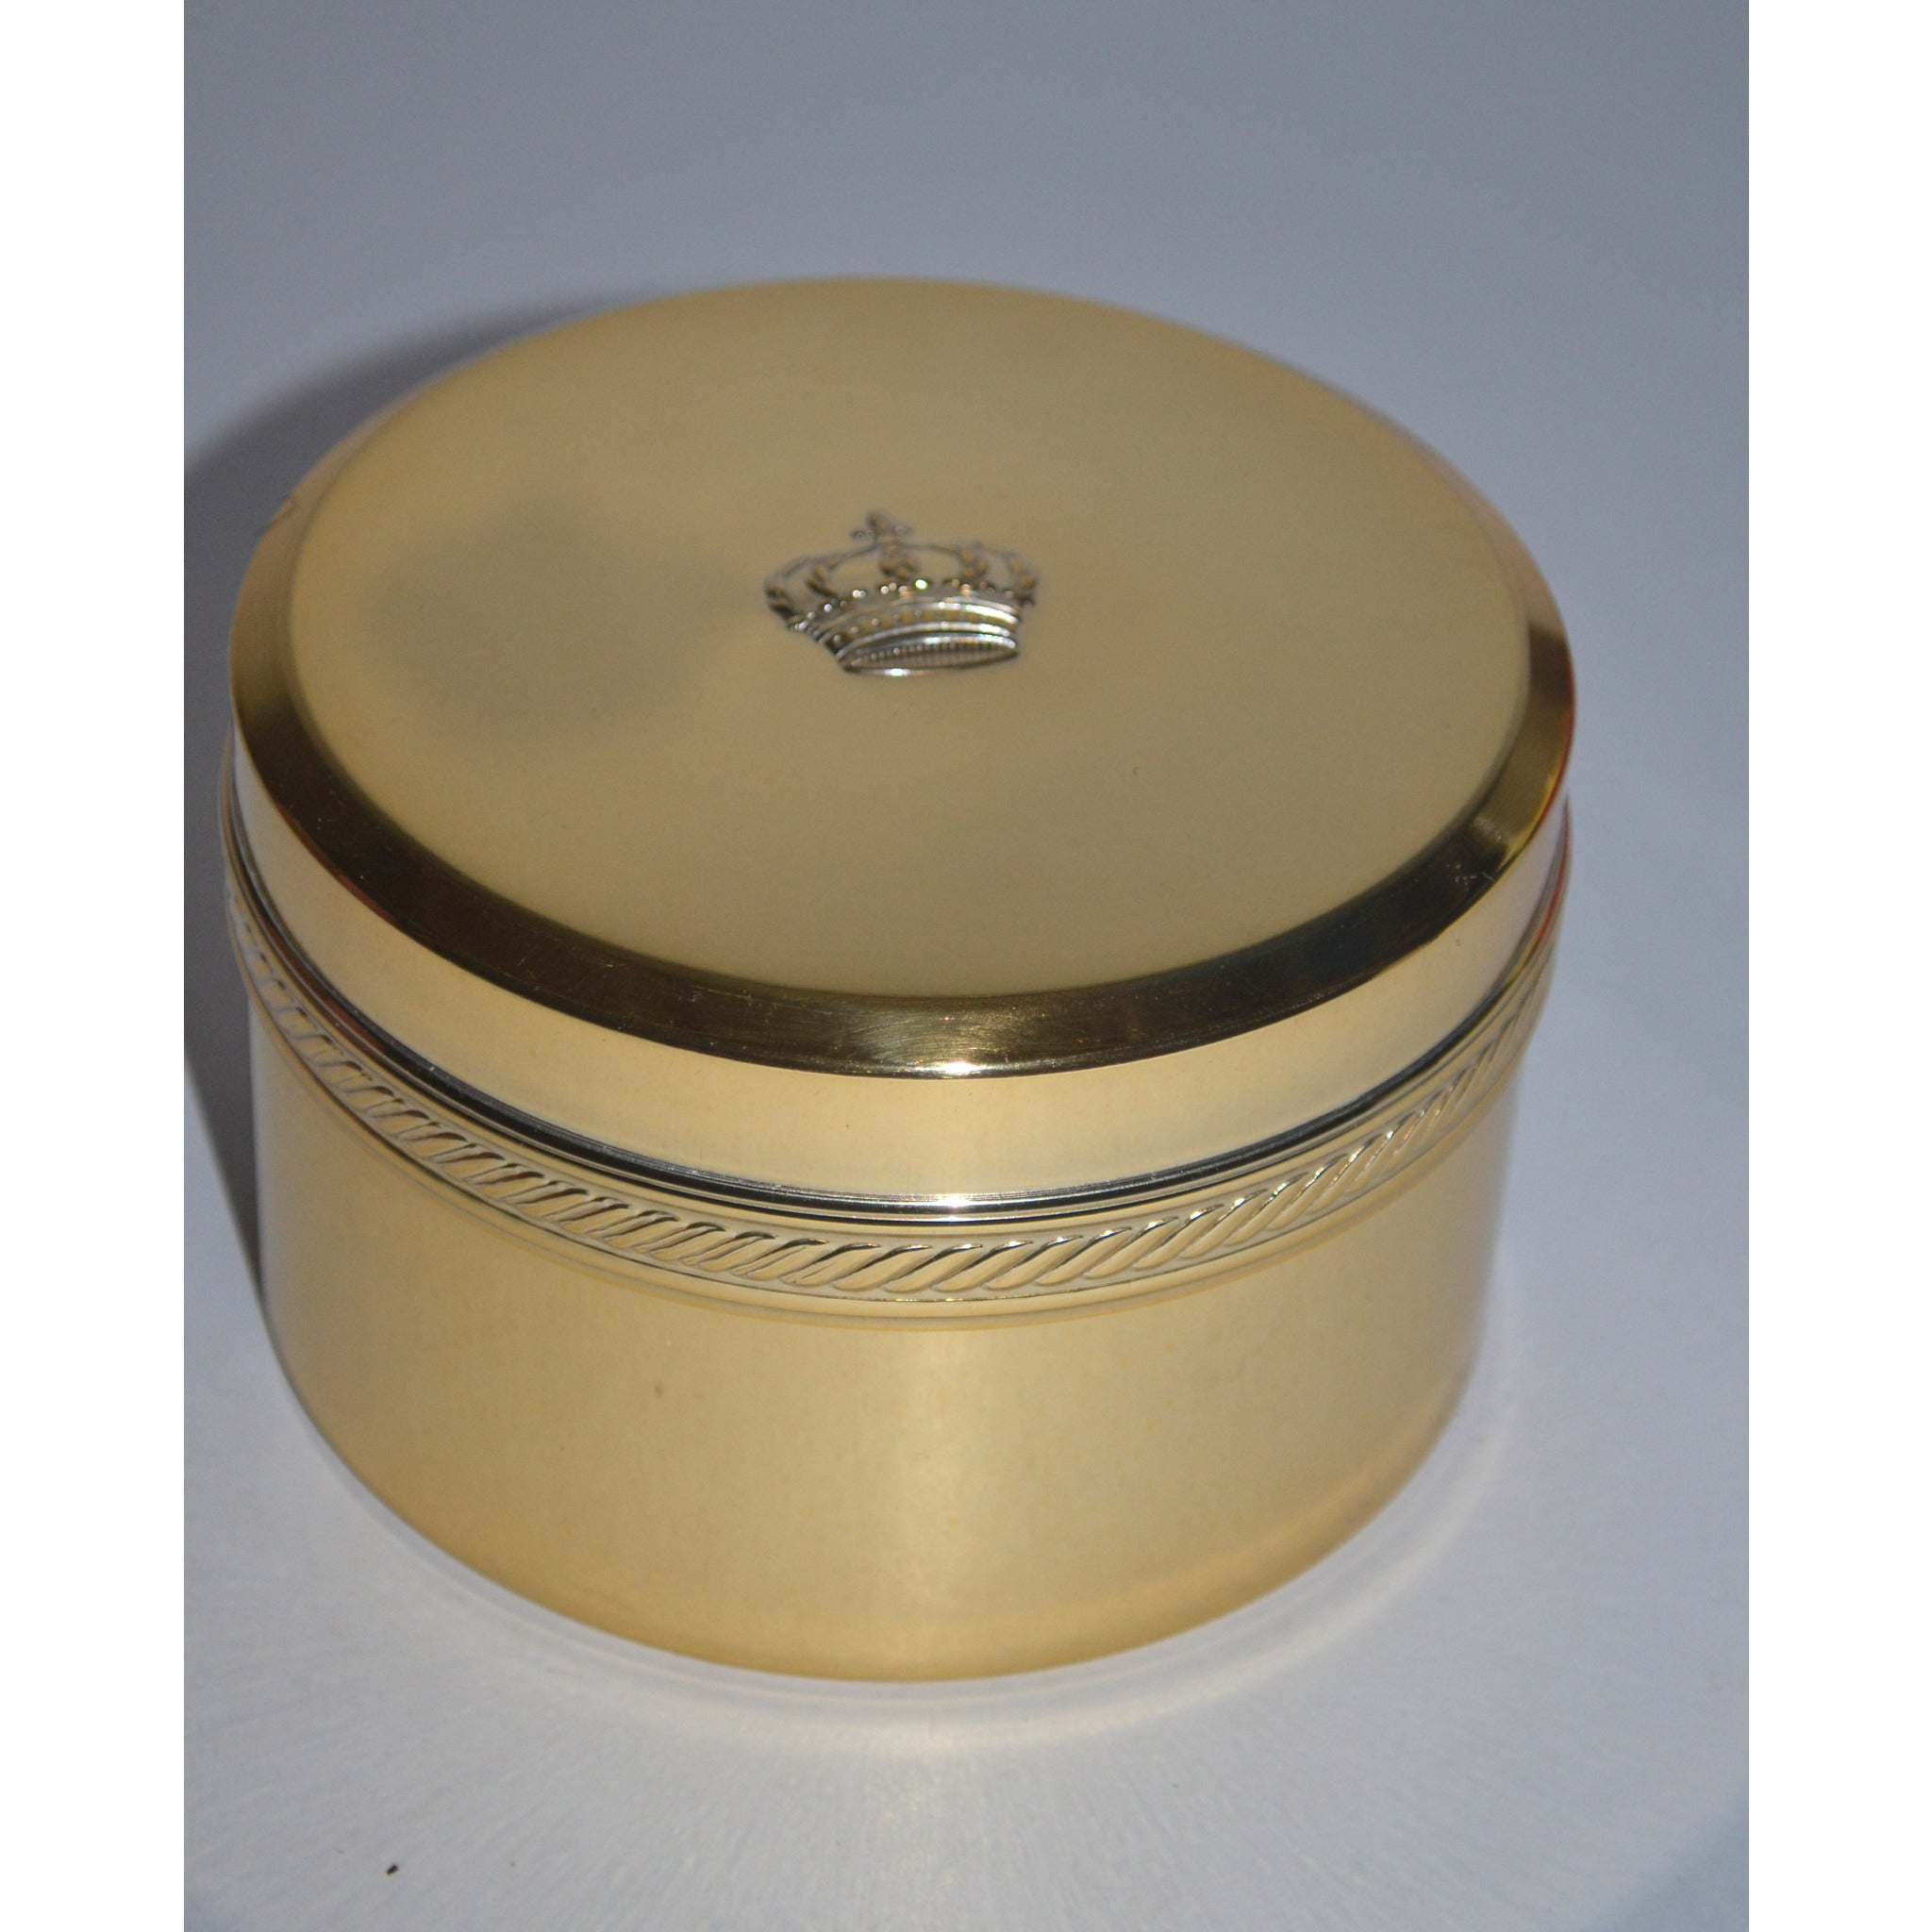 Vintage Chantilly Collection Royale Powder By Houbigant